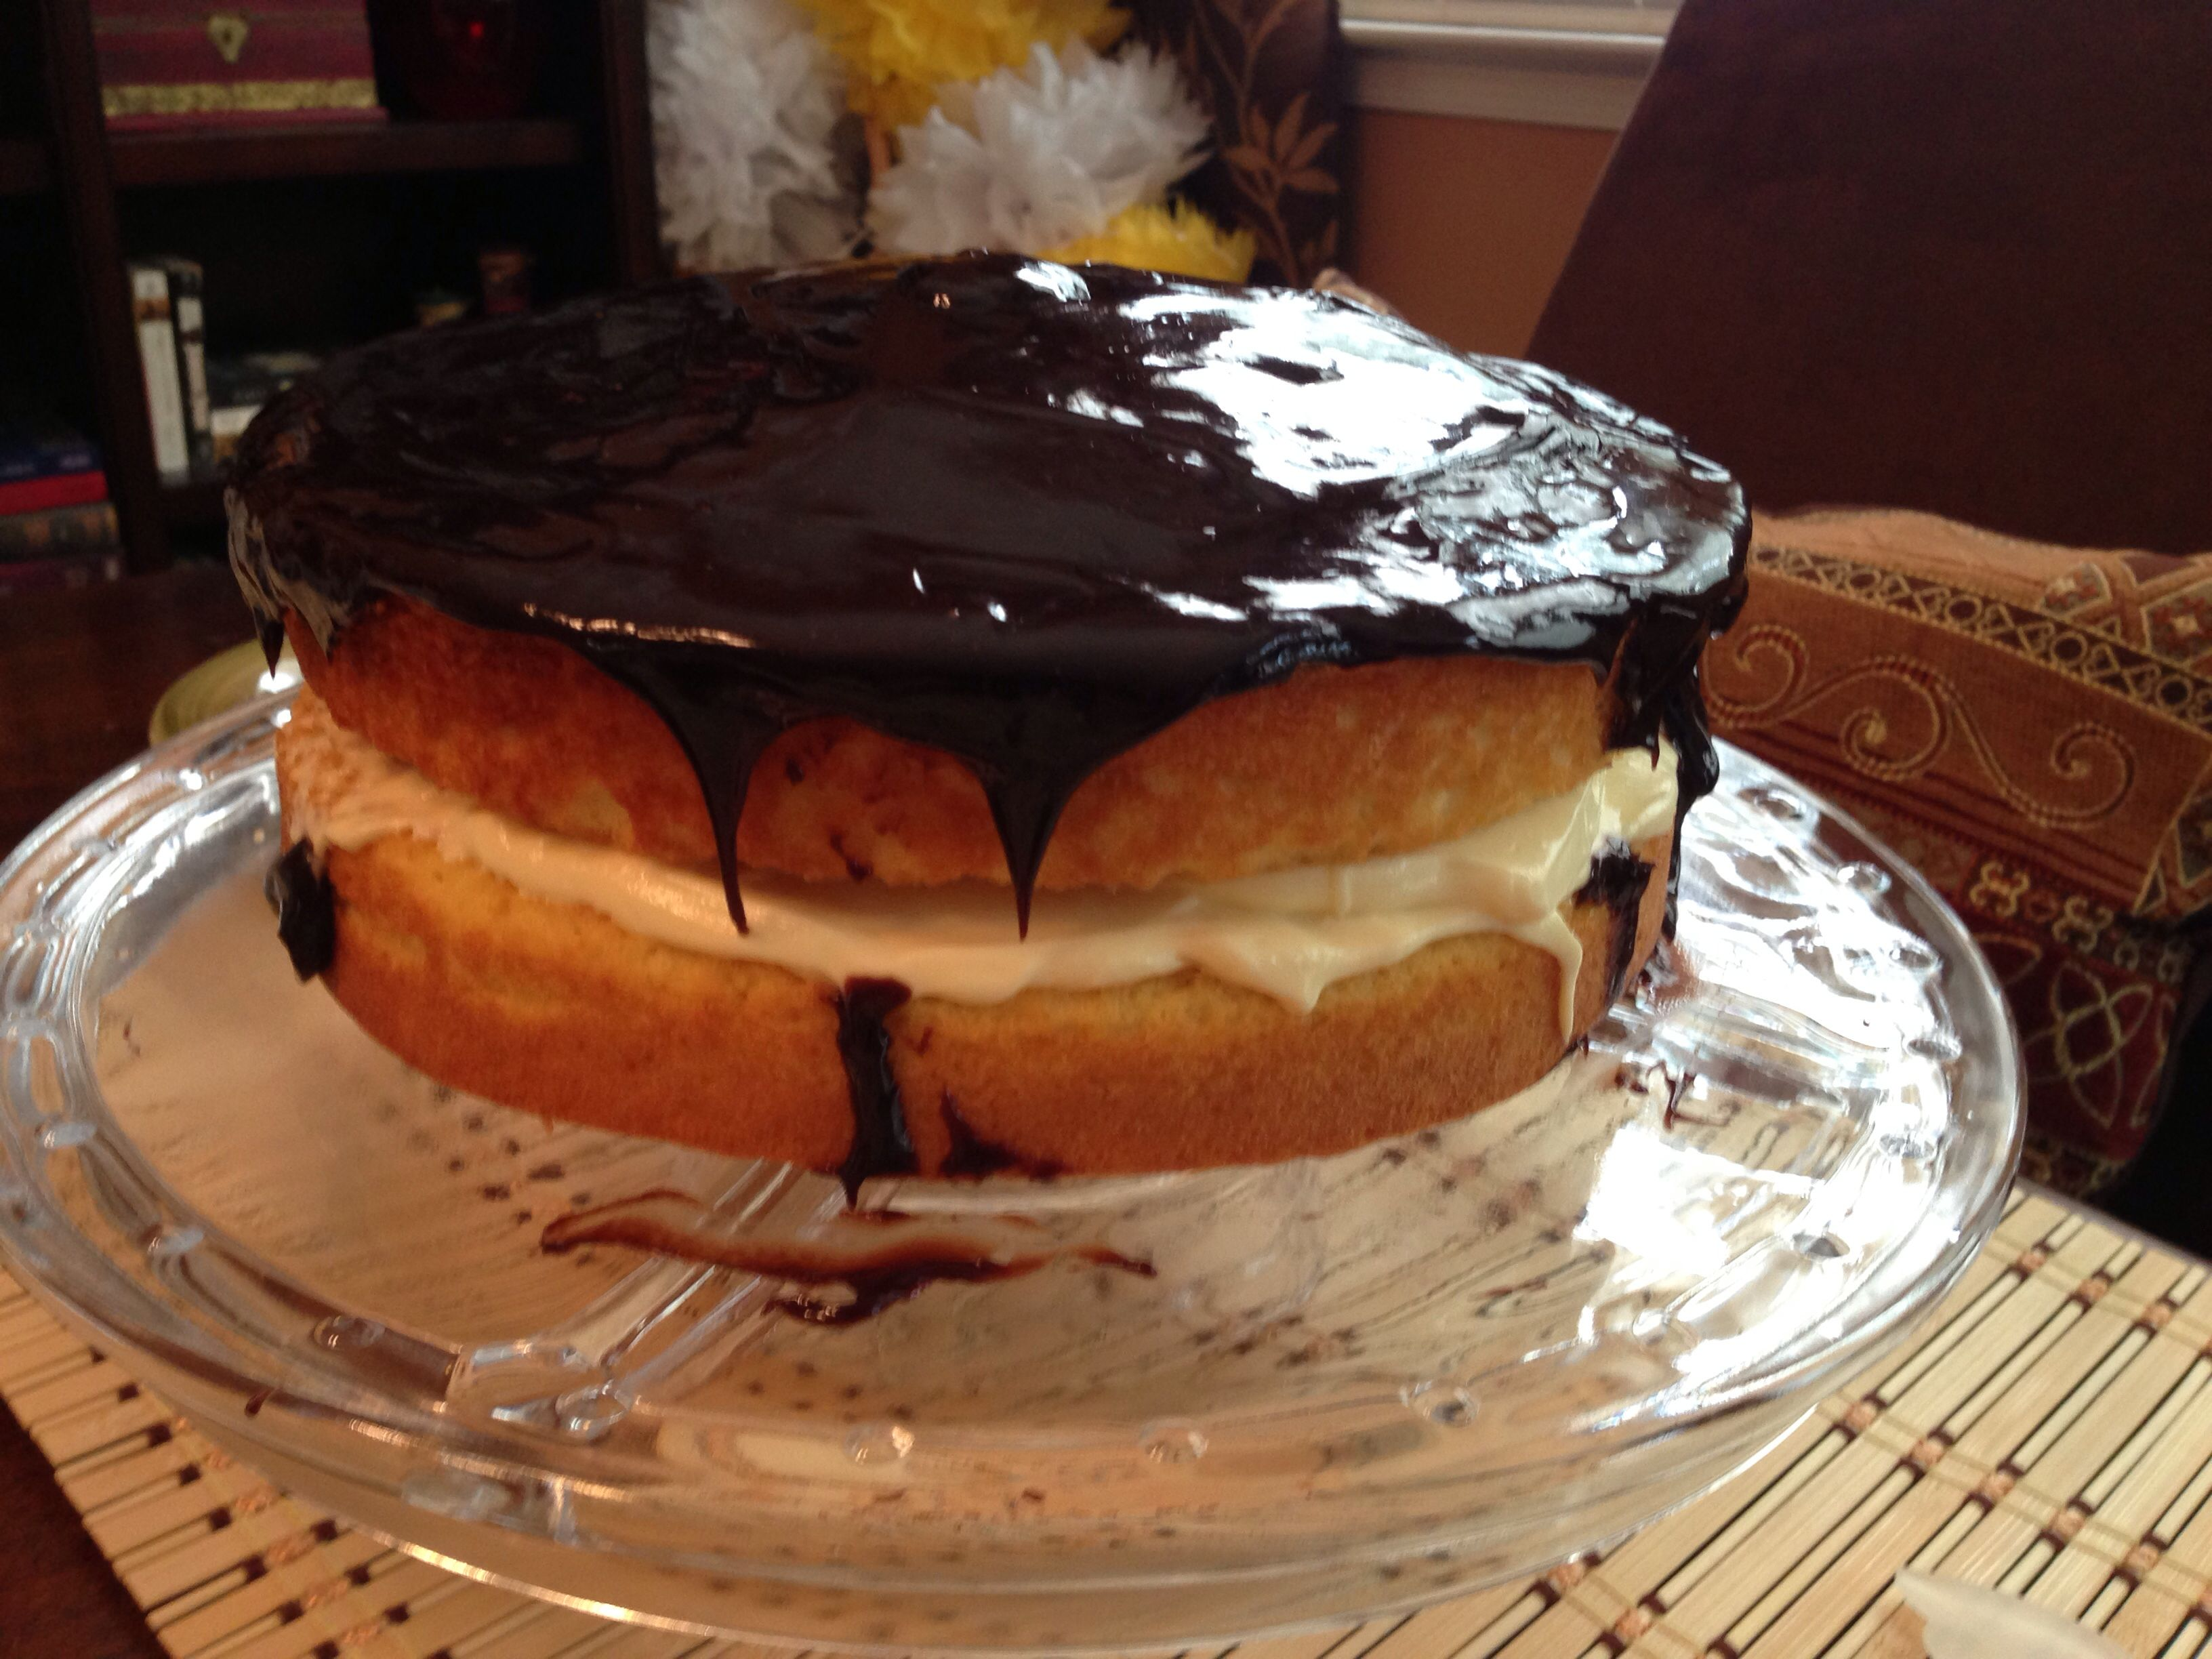 Boston cream cake.